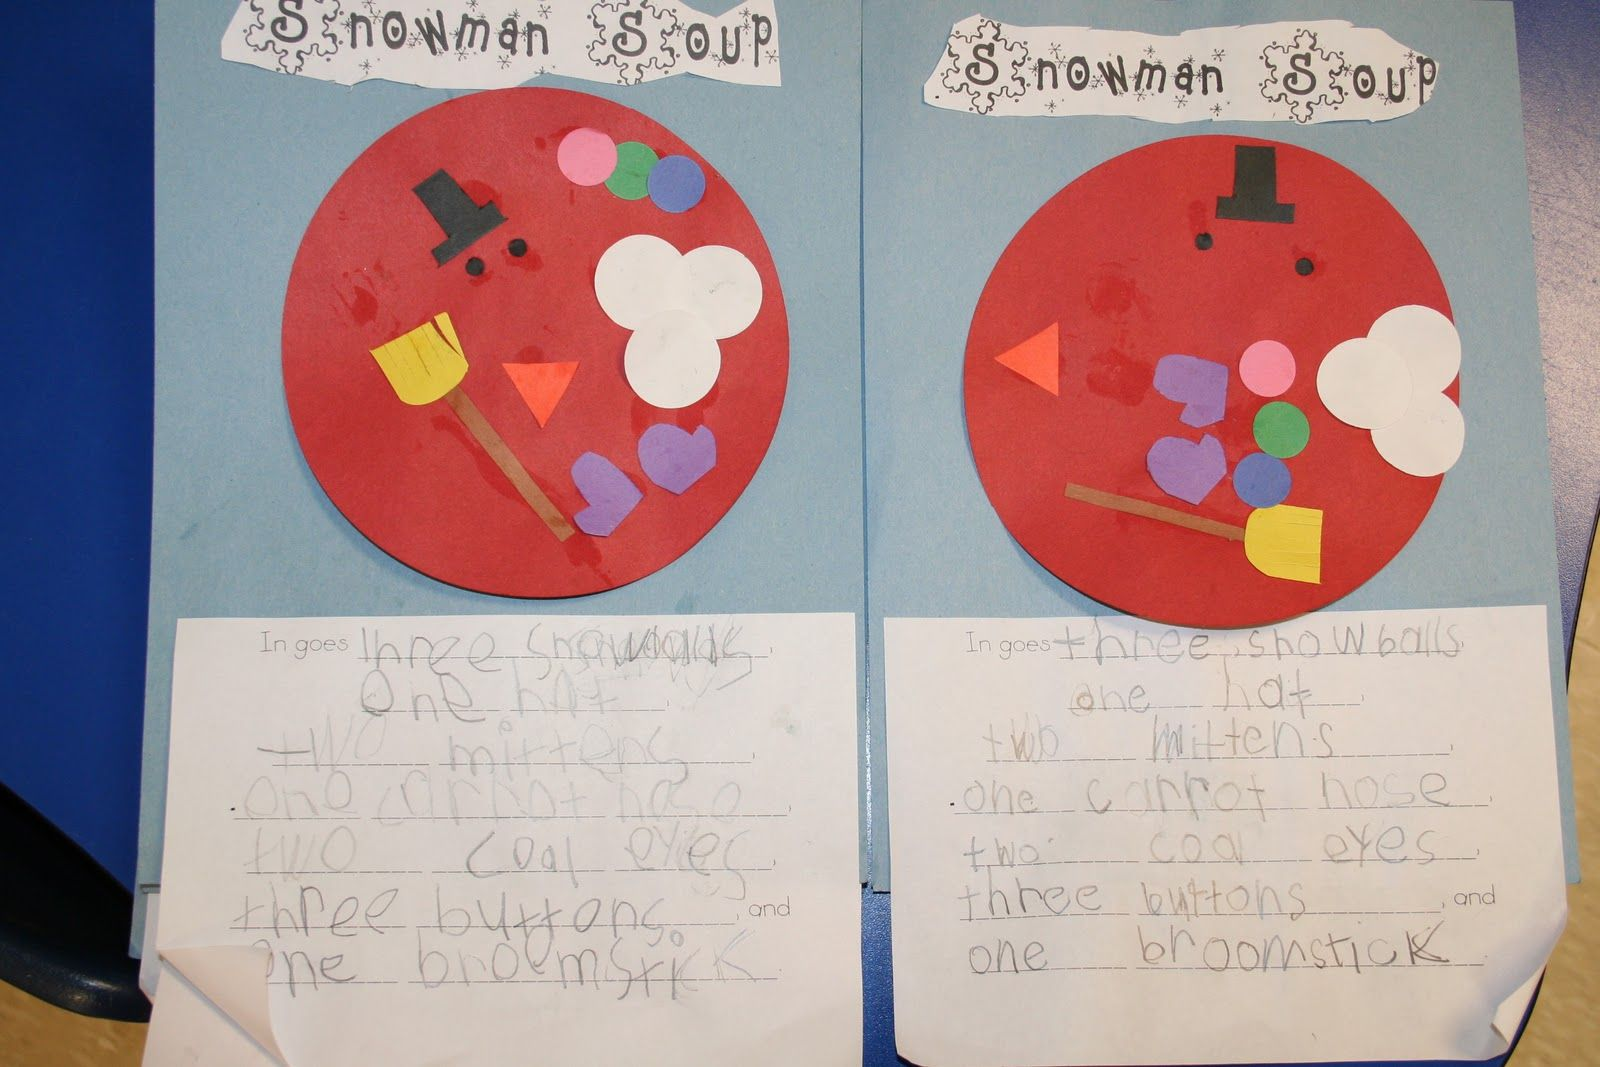 Snowman Soup Cool Creative Writing Activity For Children In Elementary School